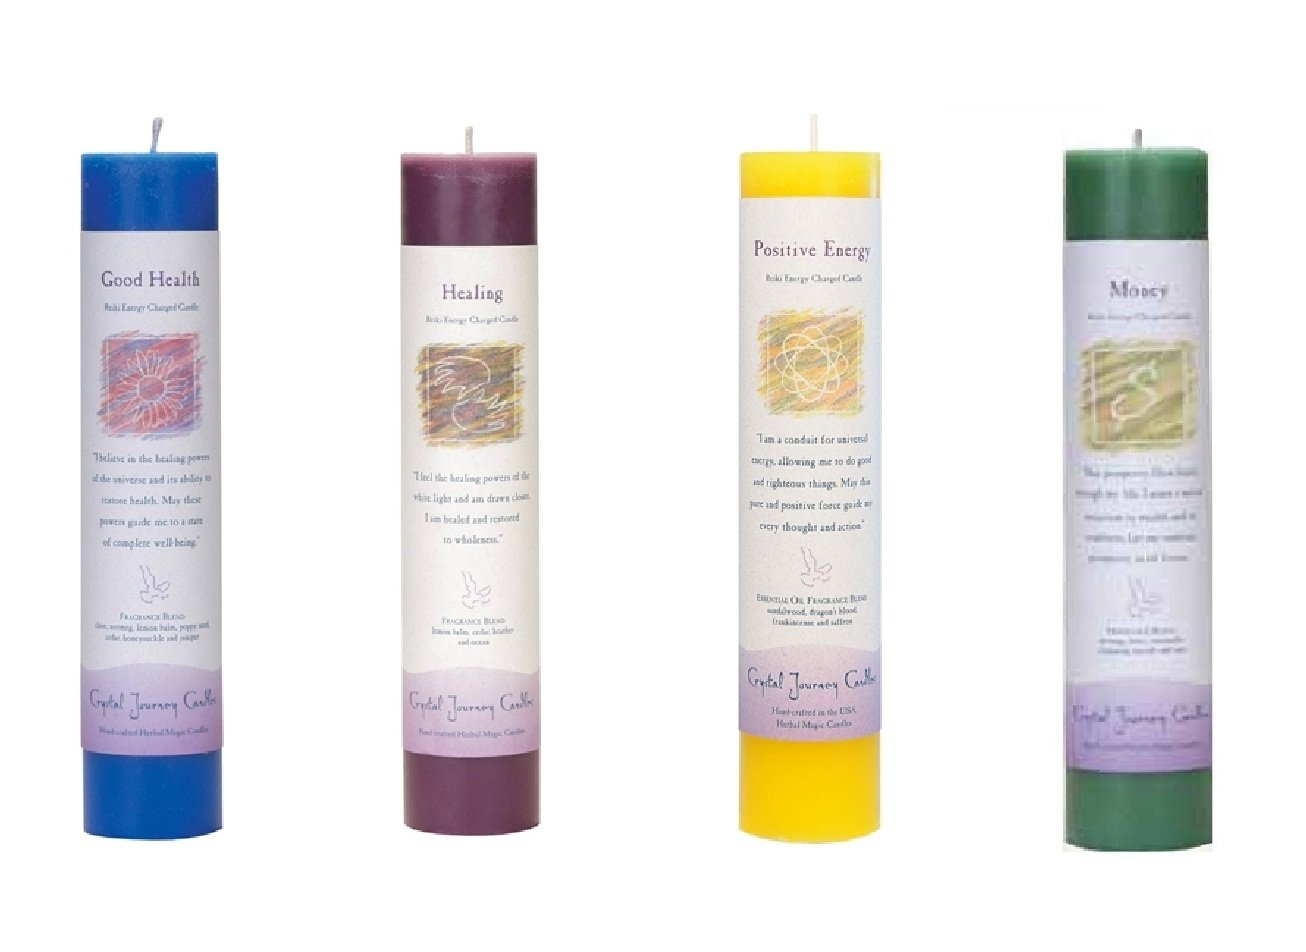 Crystal Journey Reiki Charged Herbal Magic Pillar Candle with Inspirational Labels - Bundle of 4 (Good Health, Healing, Positive Energy, Money) Each 7''x1.5'' handcrafted with lead-free materials by Crystal Journey (Image #1)